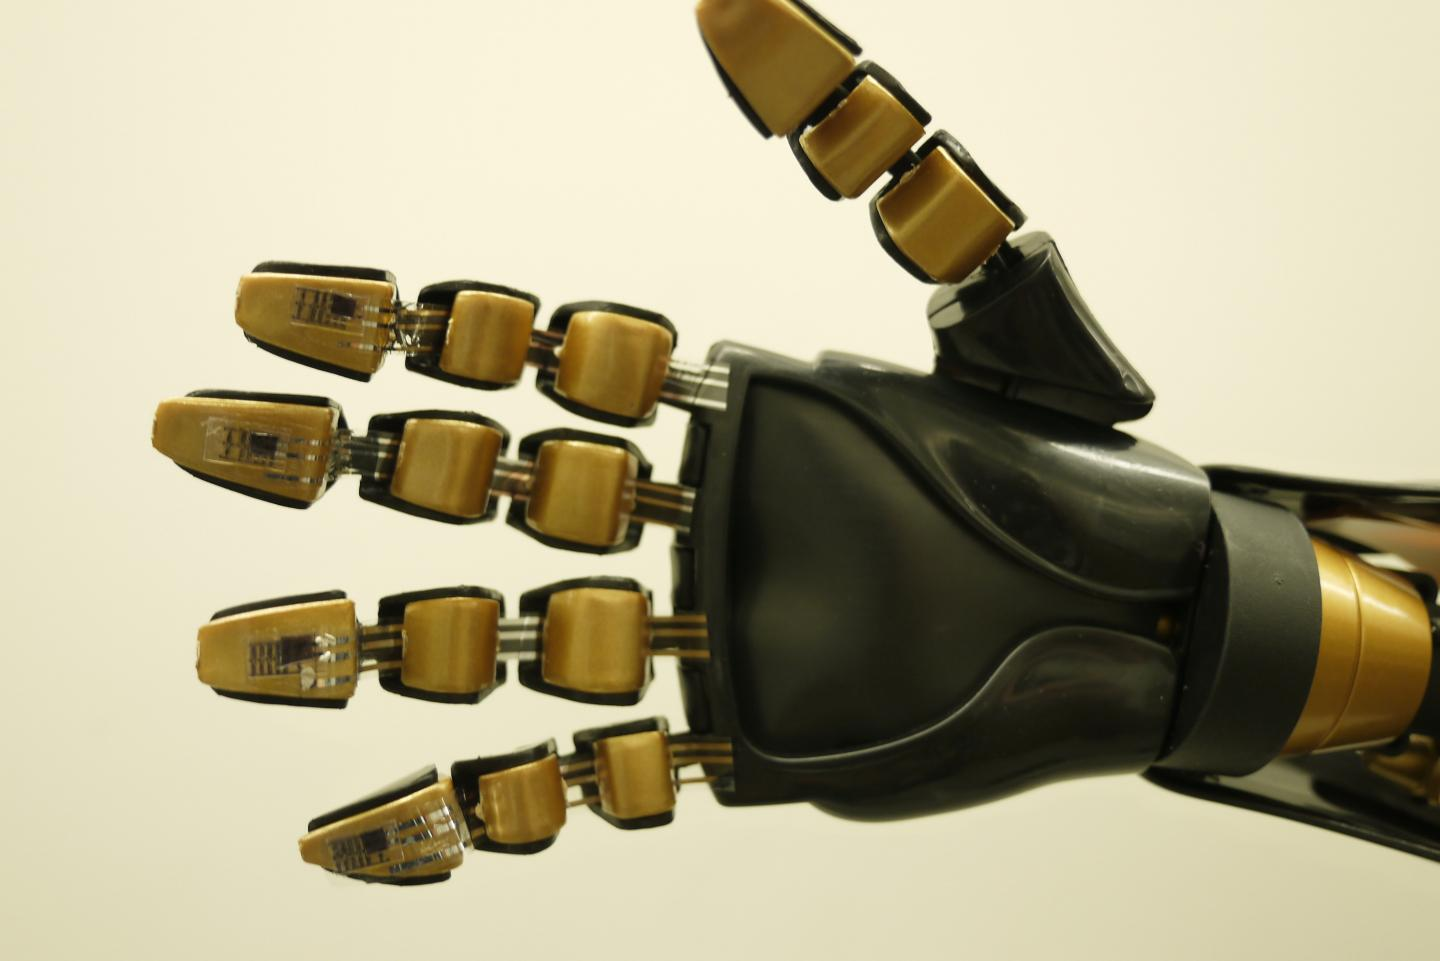 Artificial 'Skin' Could Provide Prosthetics With Sensation (1 of 3)